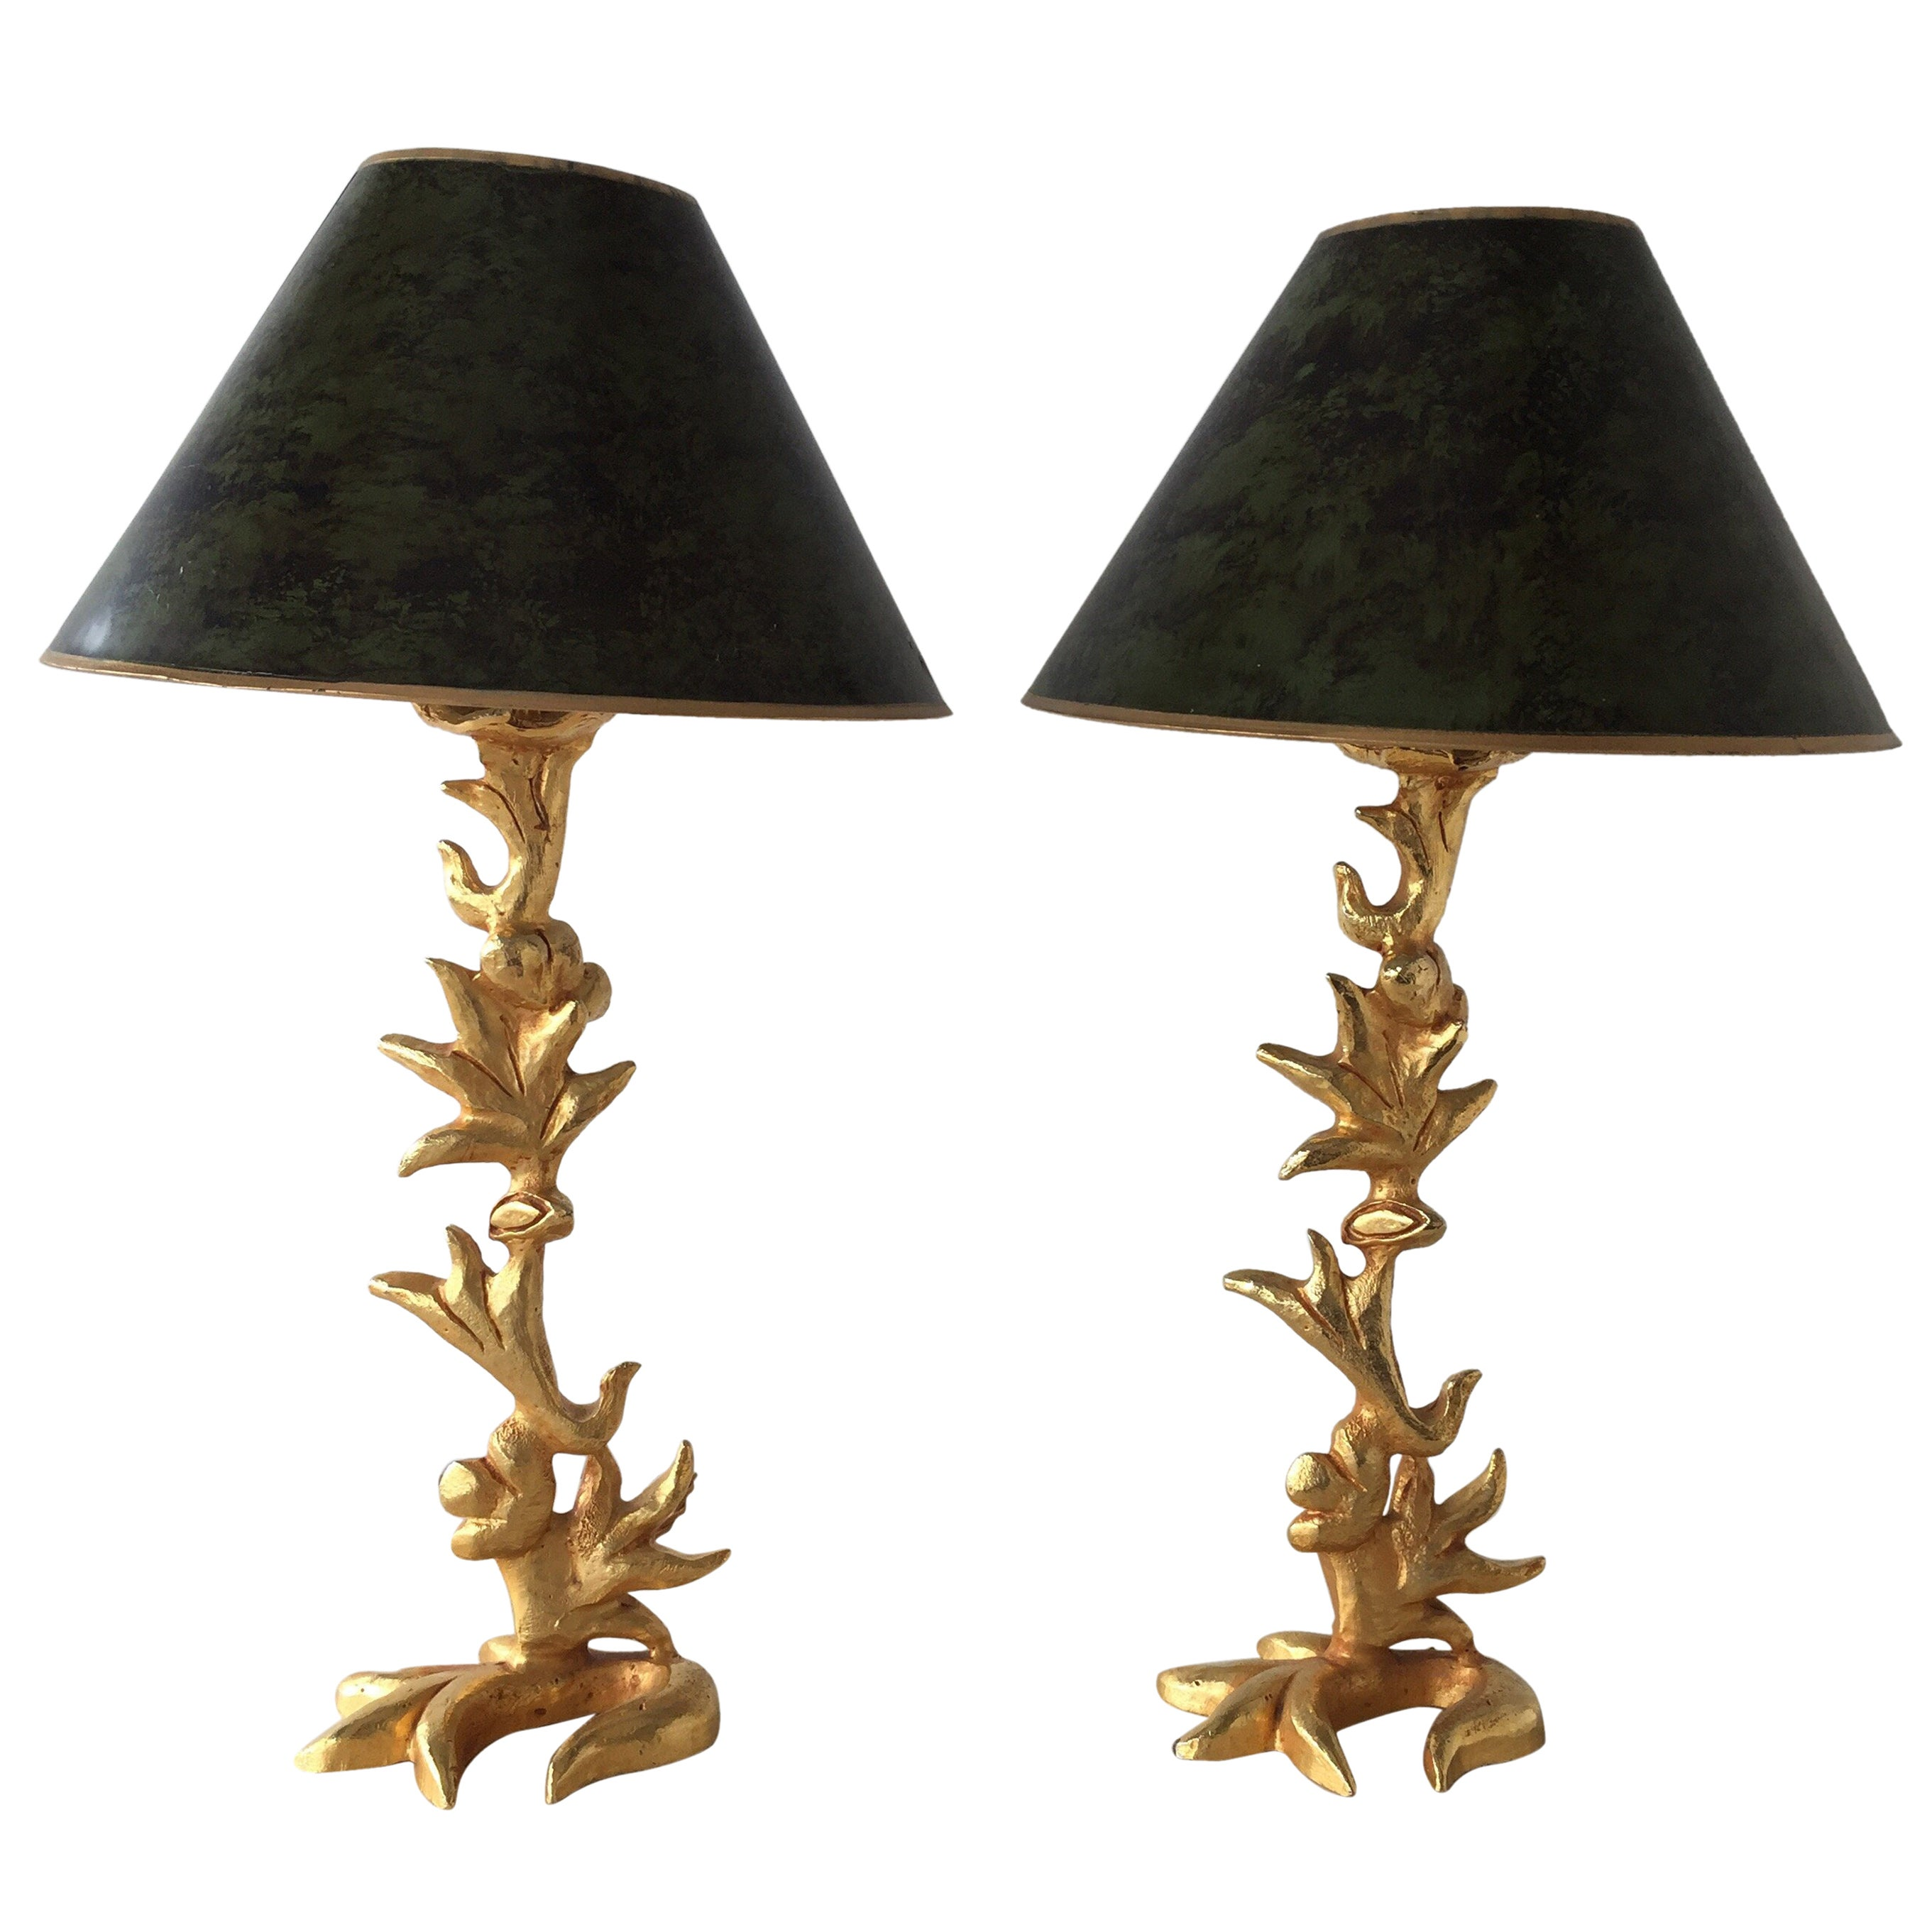 Pair of Rare Fondica by Mathias, Heavy Gilded Bronze Table Lamps